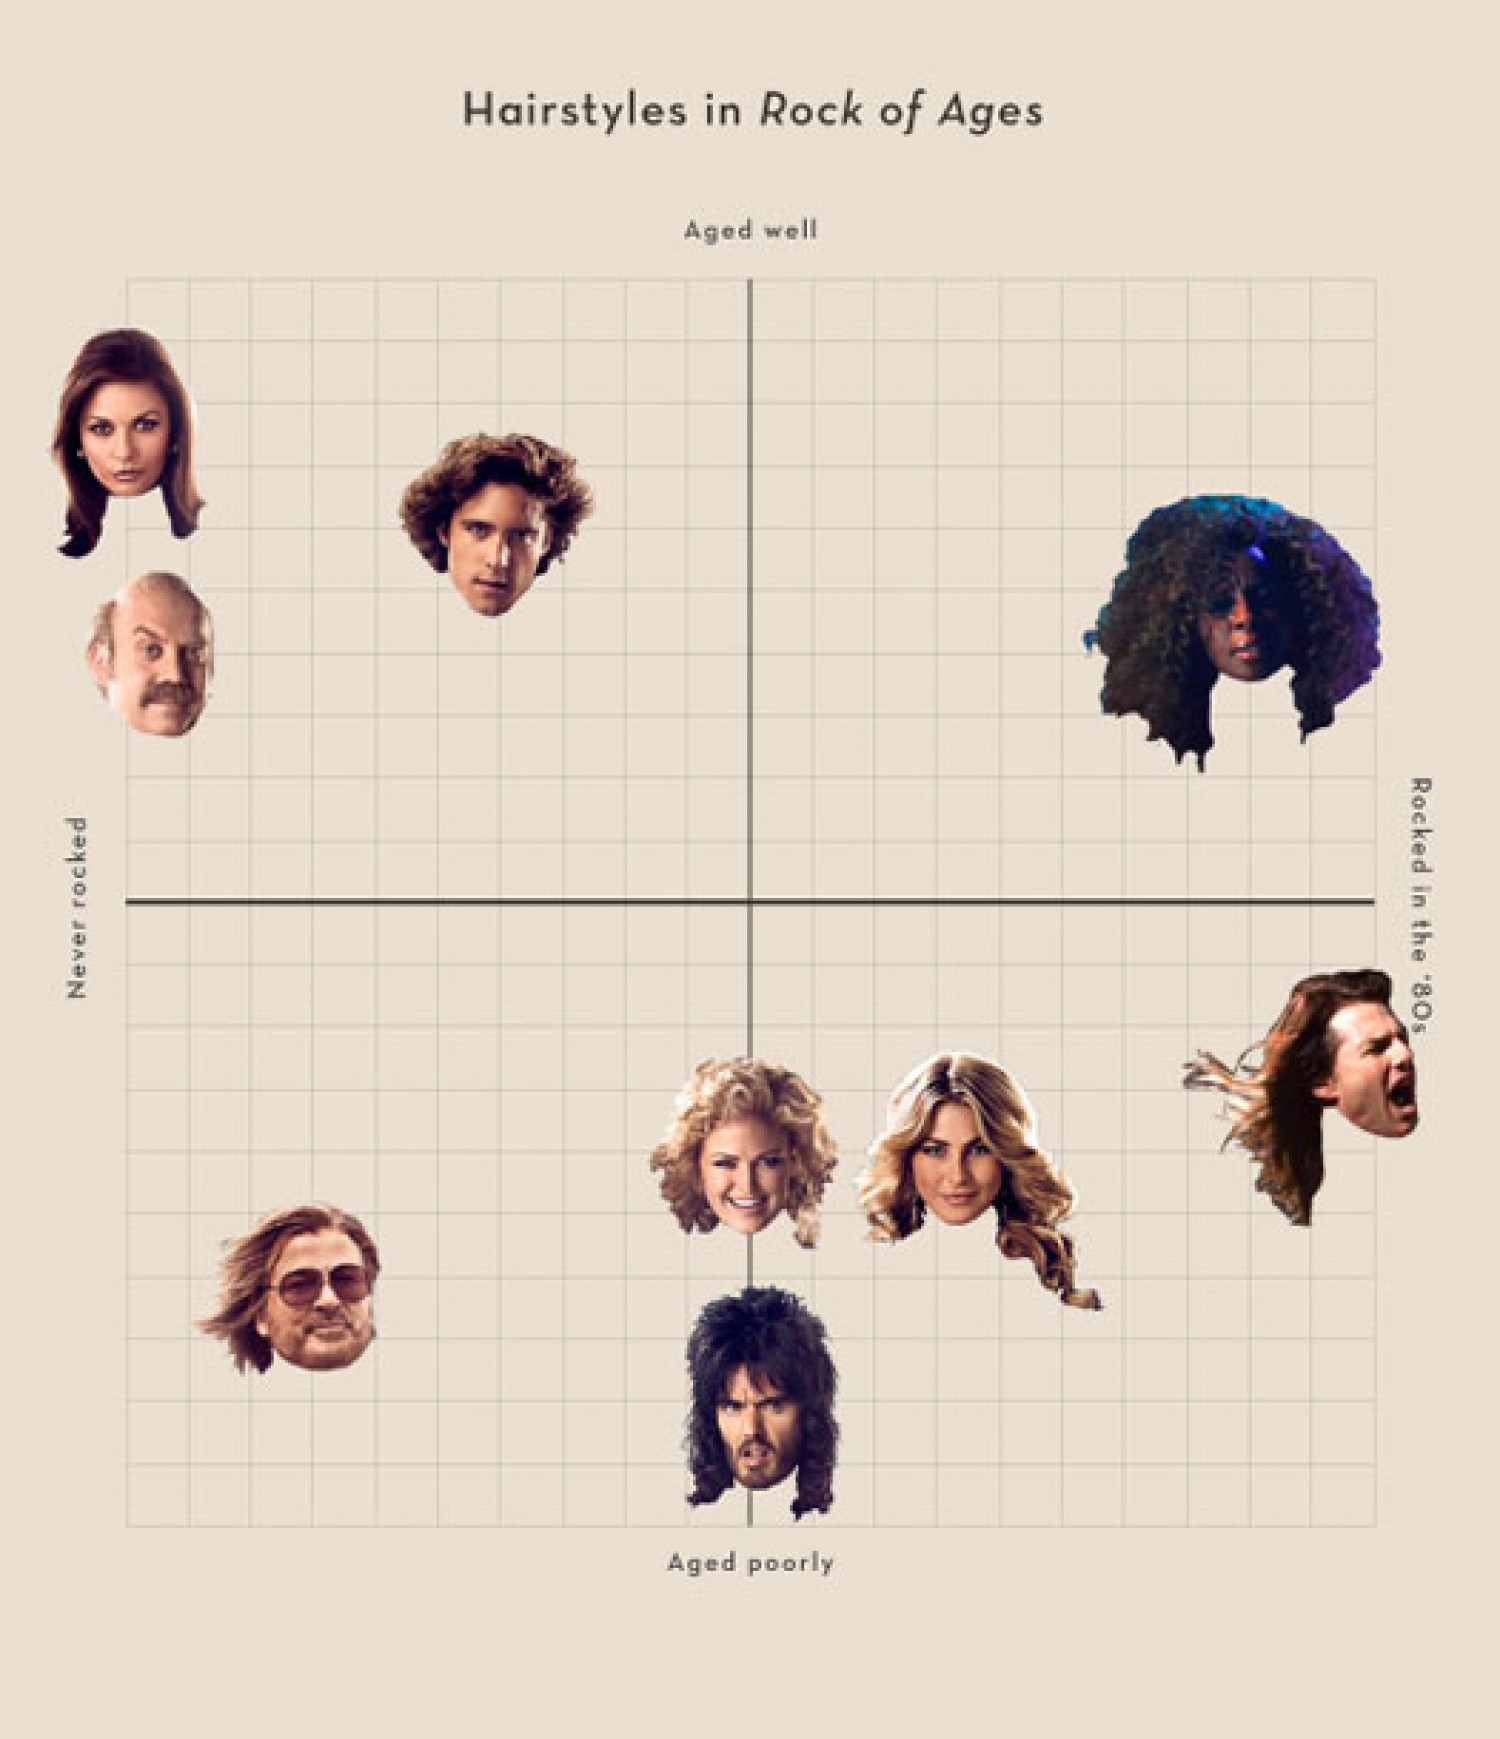 Rock of Ages Hairstyles Infographic